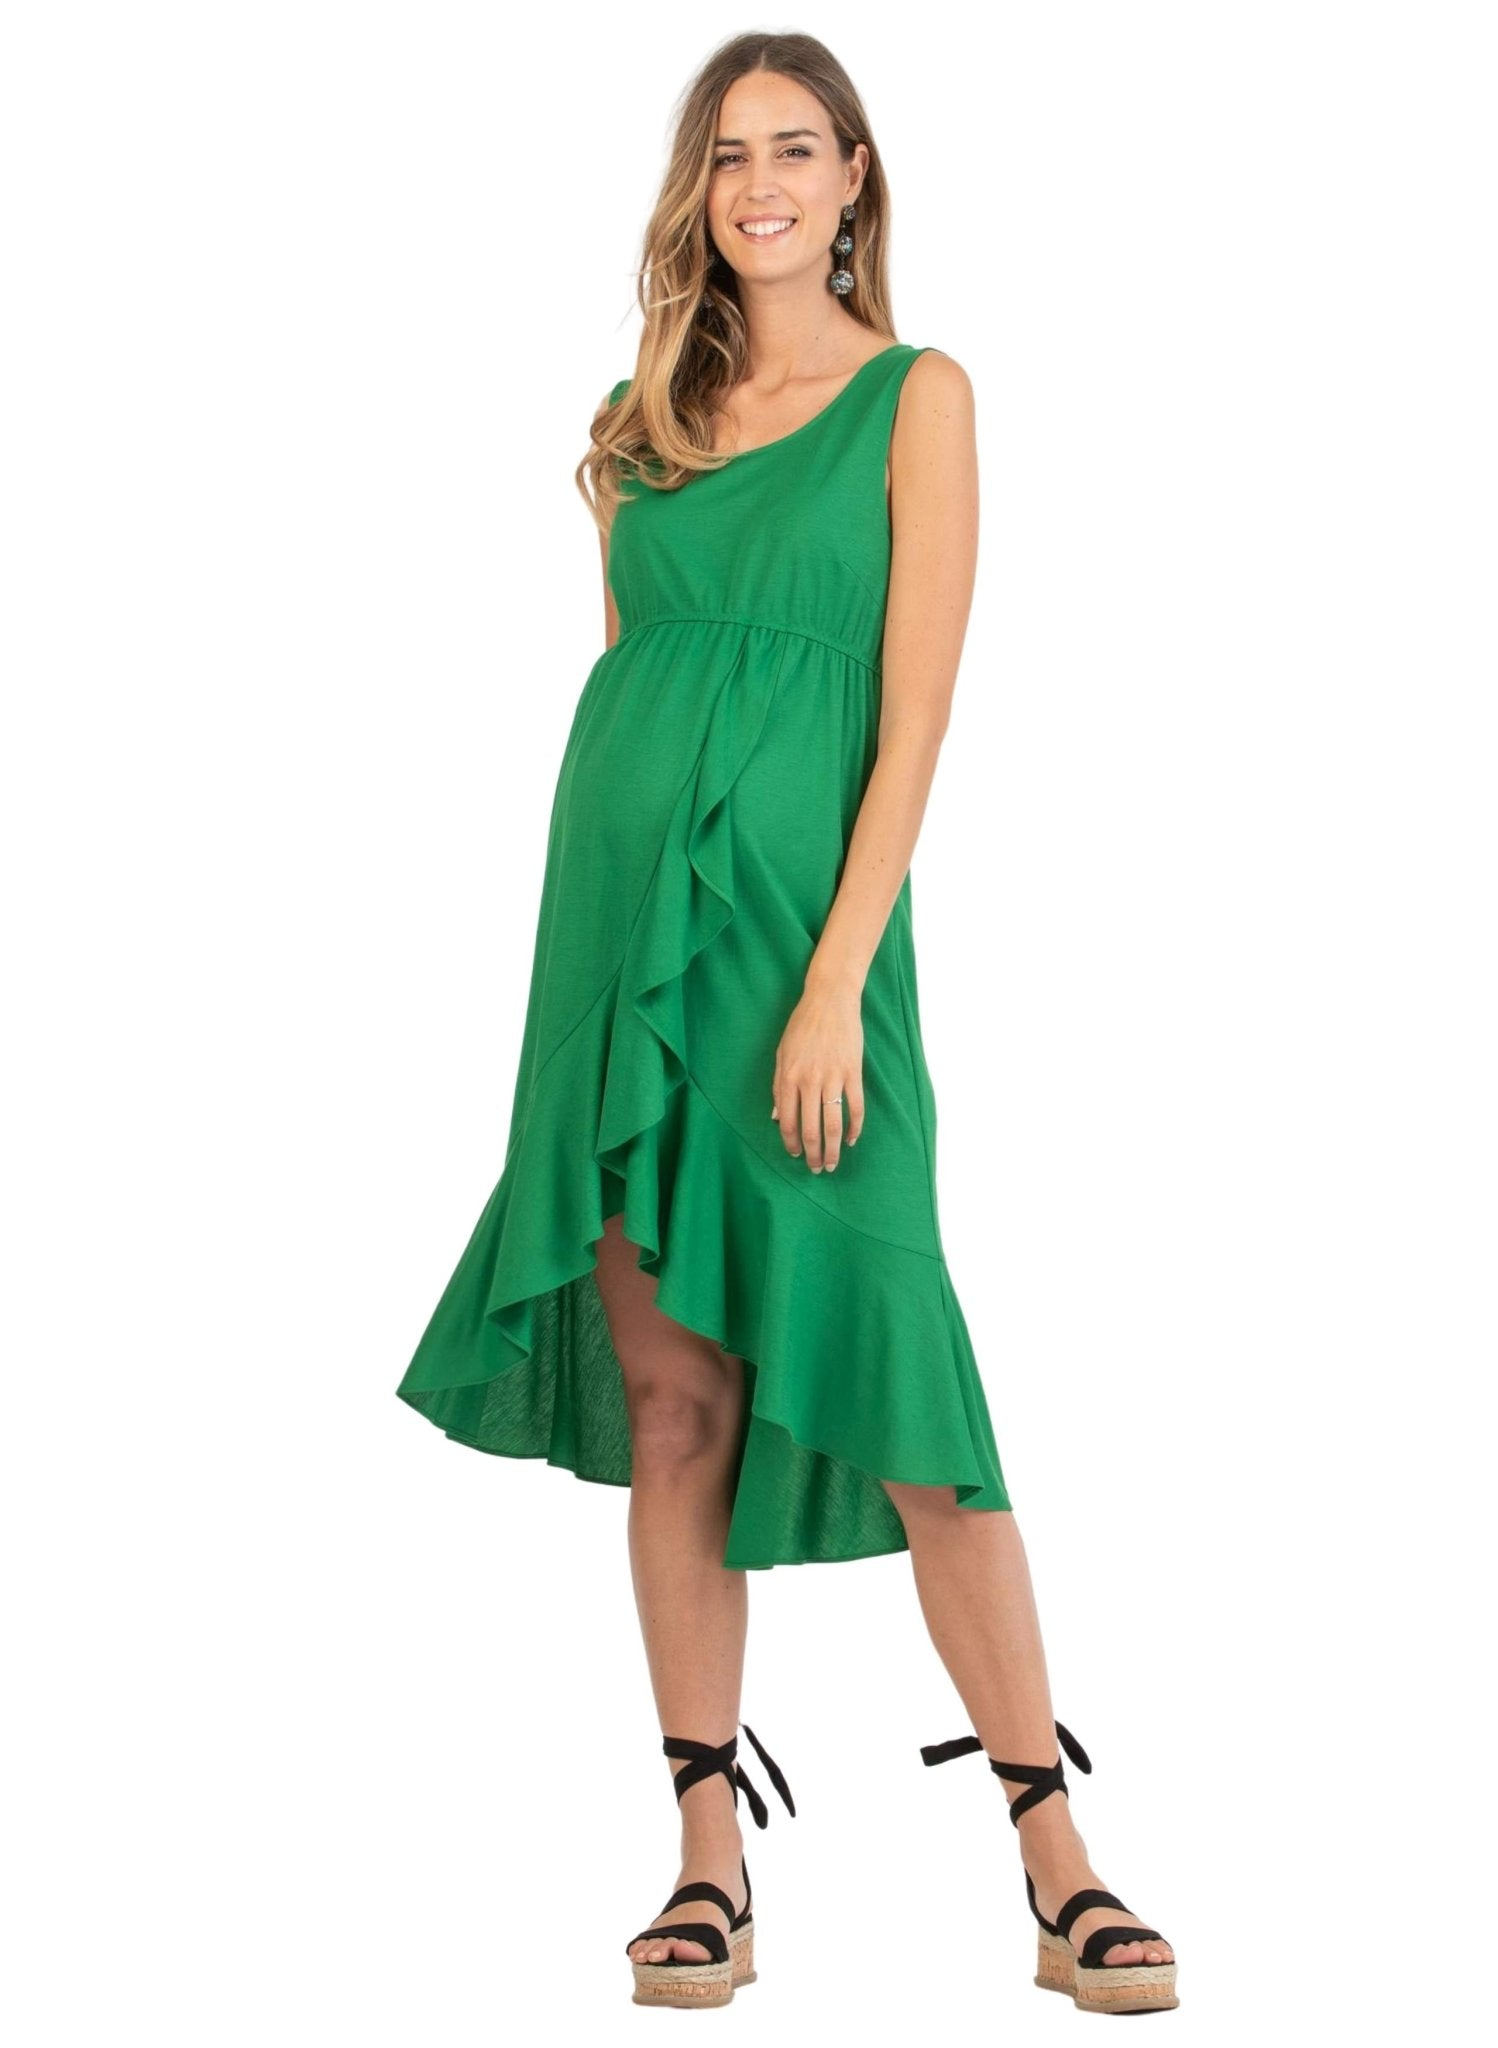 Asymmetric Maternity Dress - Green - Mums and Bumps